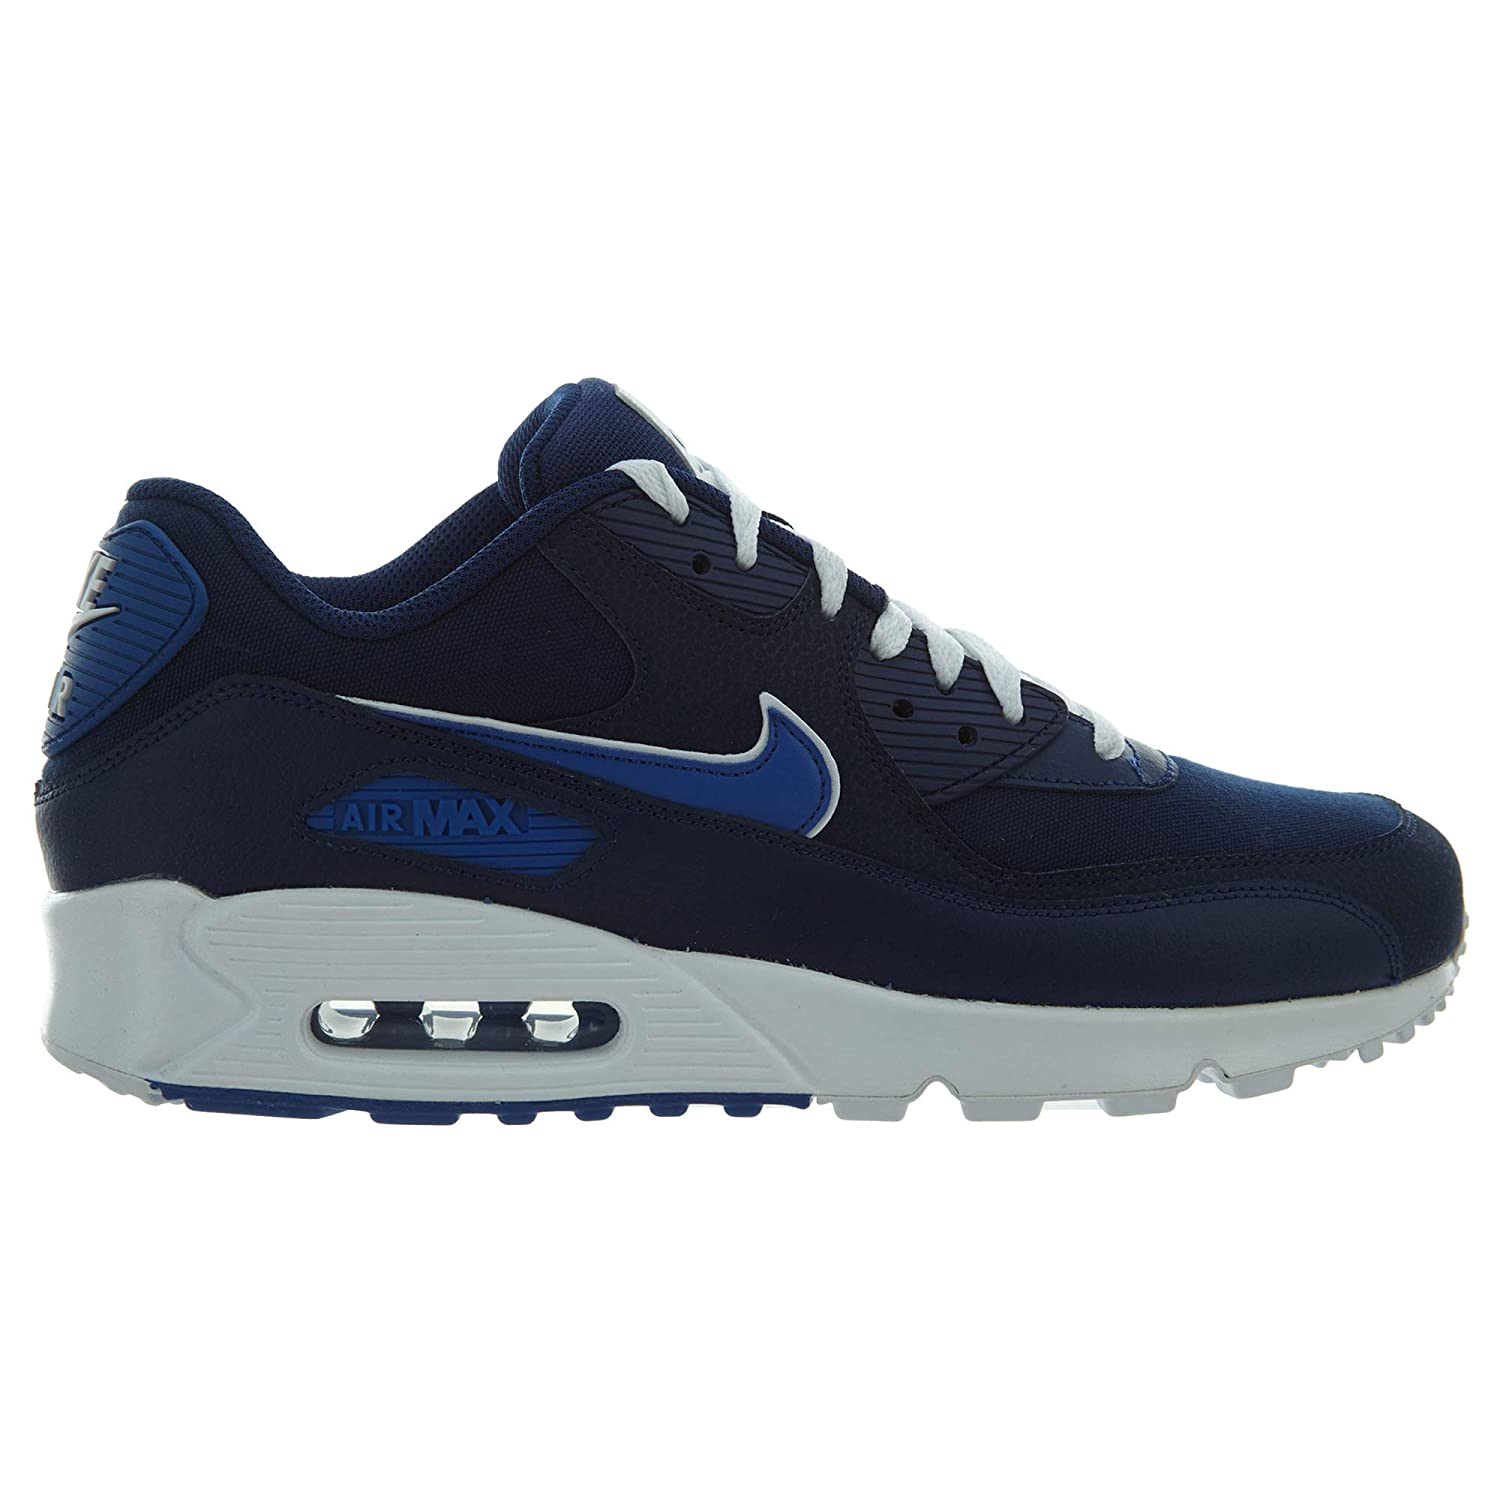 100% authentic 7146e 74f4c Nike Men s s Air Max 90 Essential Gymnastics Shoes Blue Void Game Royal  White, 12 UK  Amazon.co.uk  Shoes   Bags